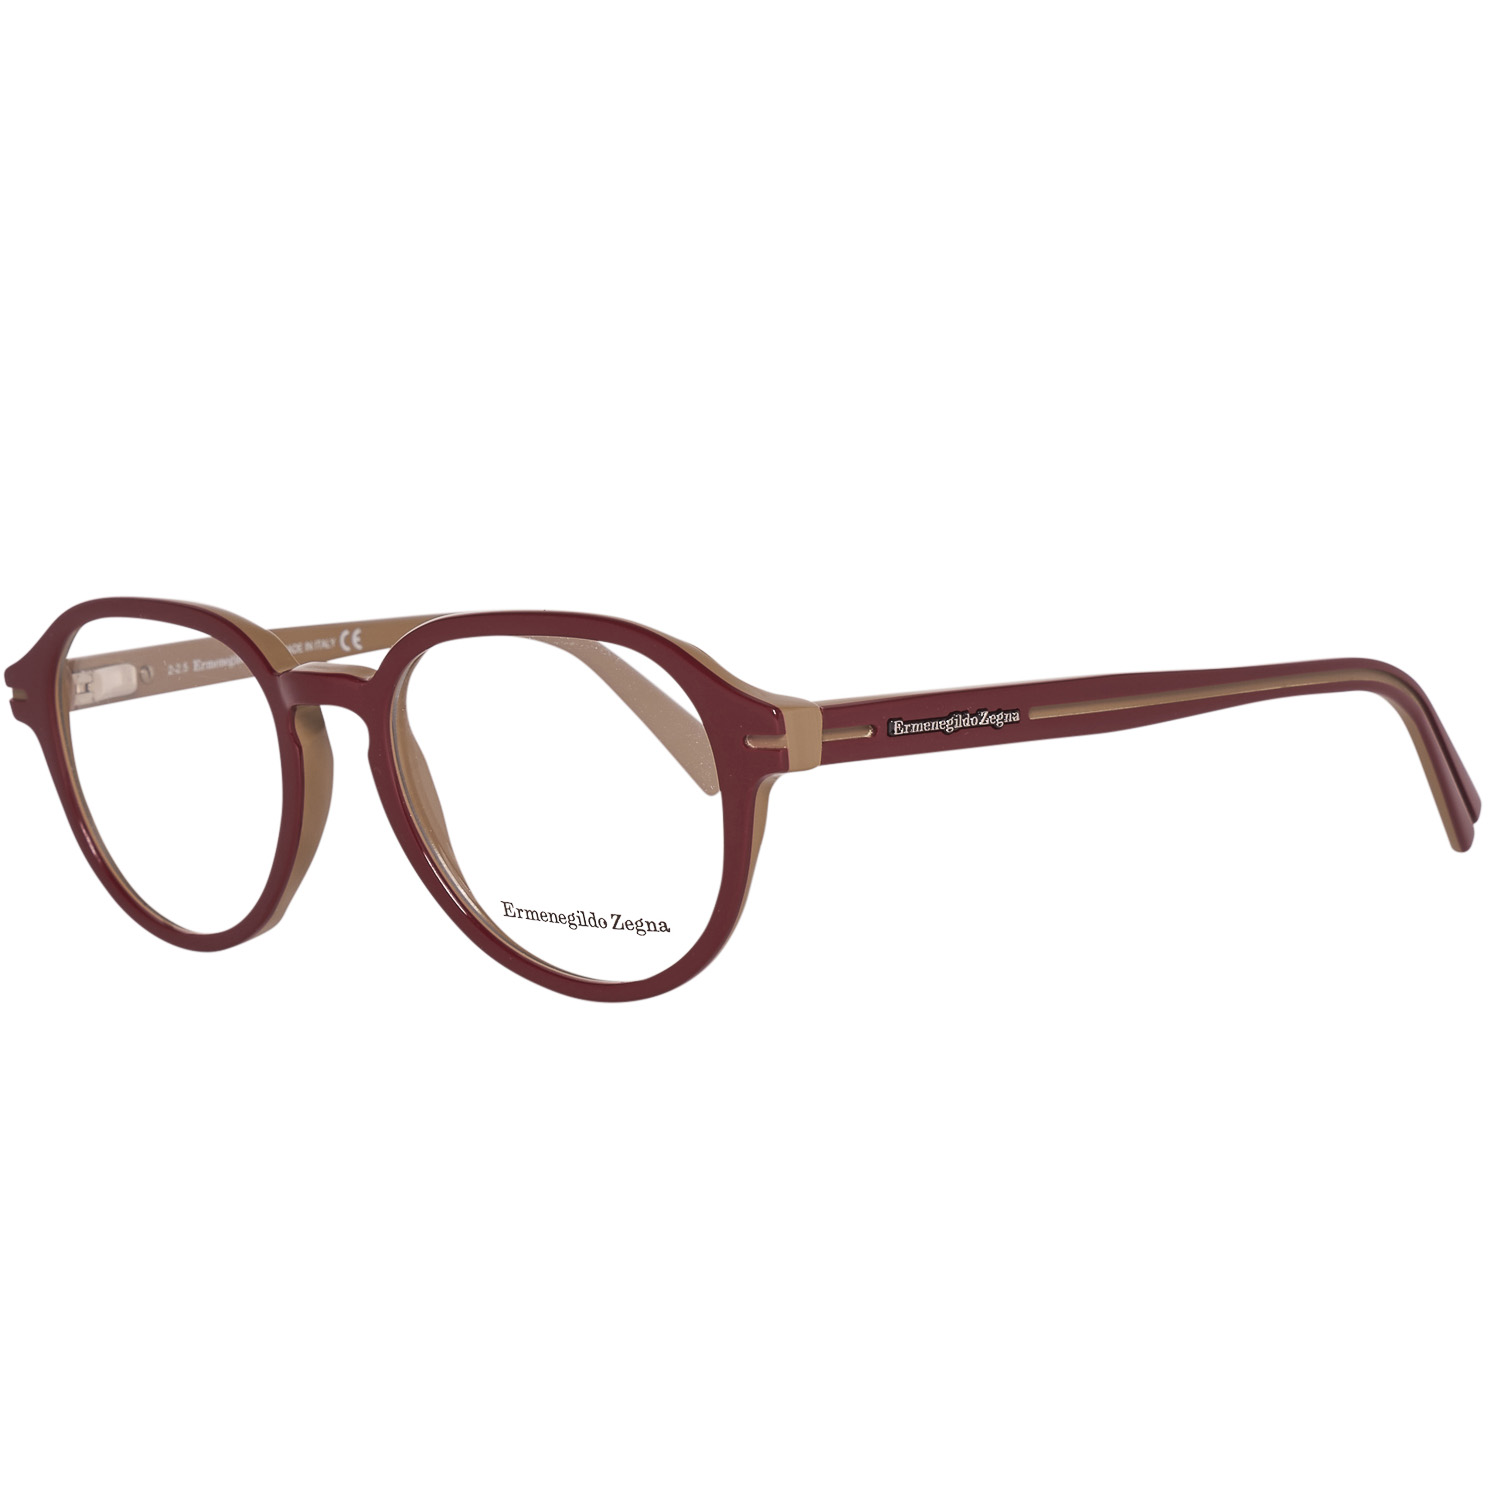 Ermenegildo Zegna Optical Frame EZ5043 071 49 Brown